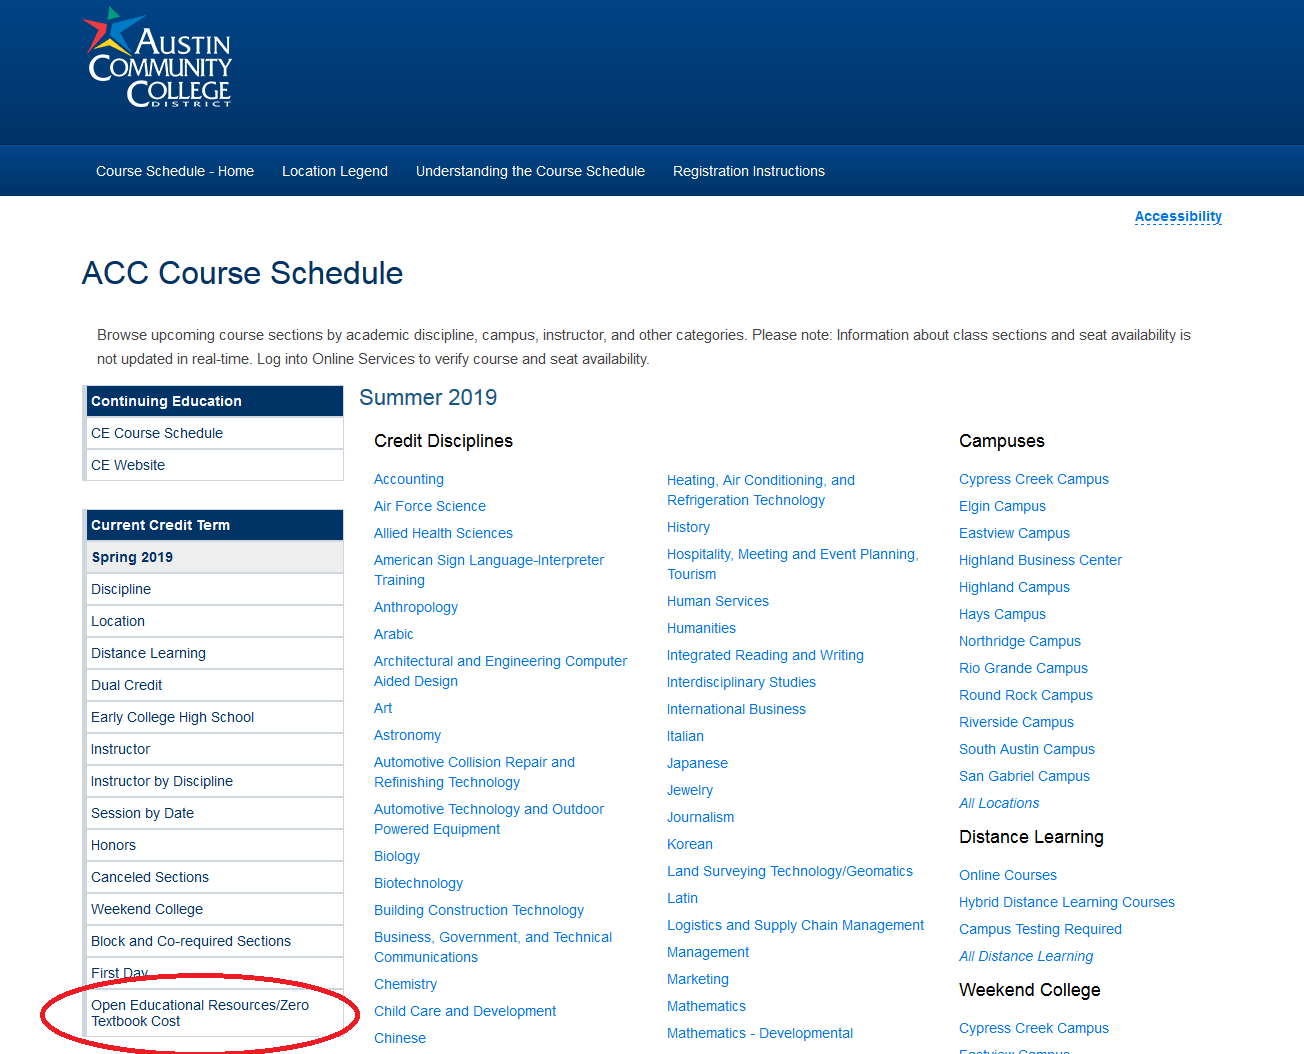 Austin Community College's Course Schedule includes a filter for Open Educational Resources/Zero Textbook Cost.